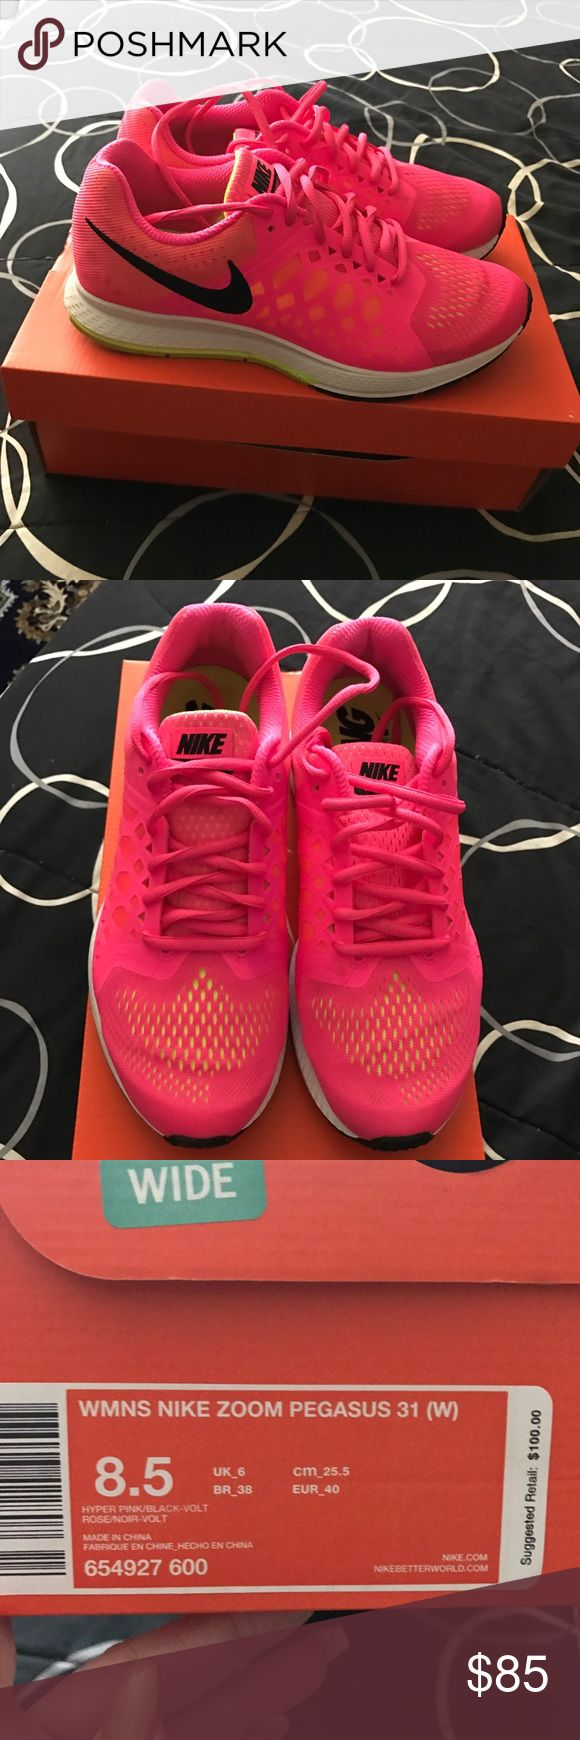 Pink Nike Shoes Worn a few times and very comfortable. Wide Width! Nike Shoes Athletic Shoes